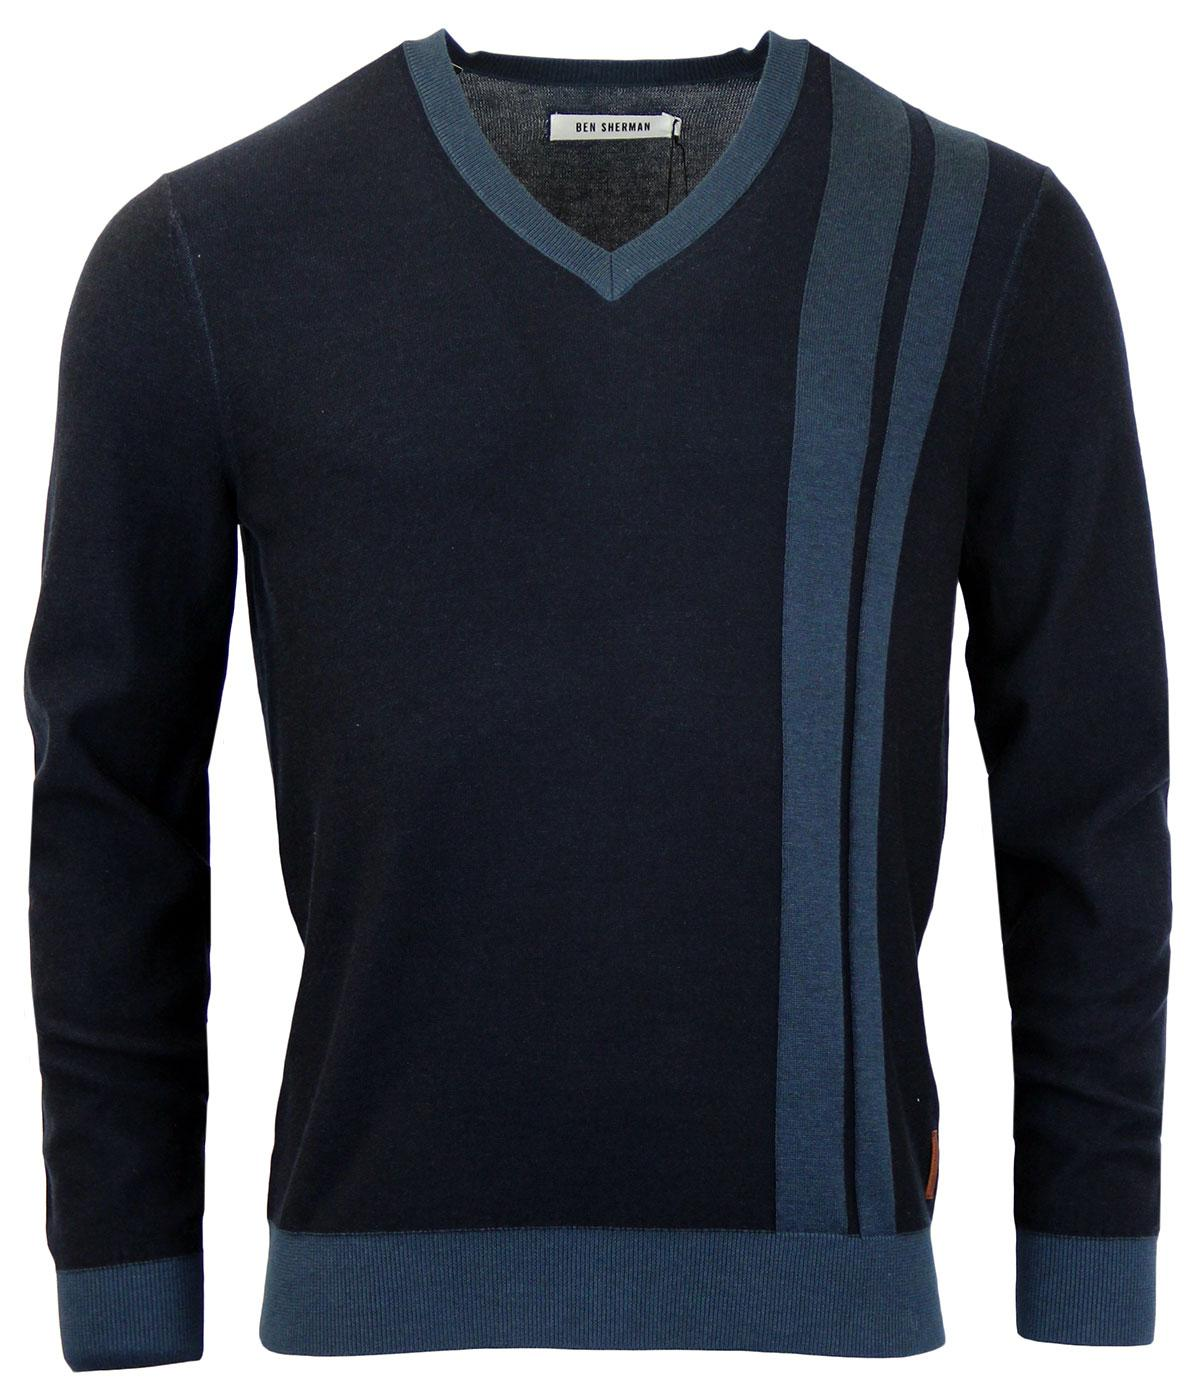 BEN SHERMAN Retro Mod Plaited V-Neck Racing Jumper